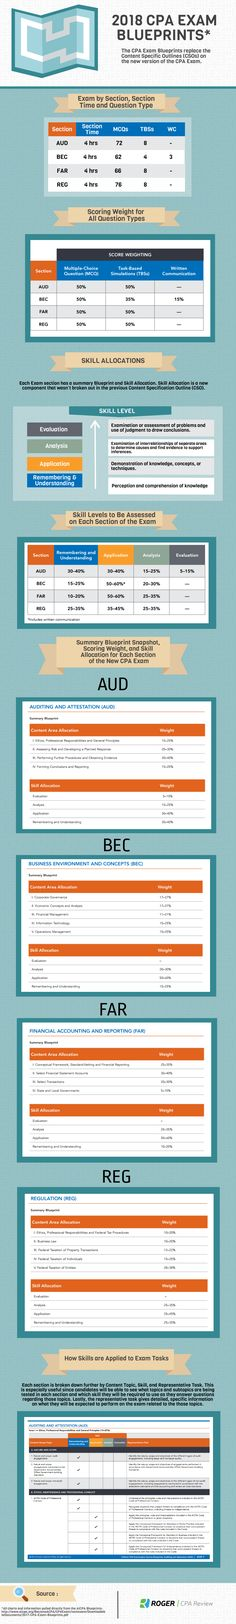 499 best cpa exam images on pinterest cpa exam exam study and the aicpa just released an updated version of the cpa exam blueprints for 2018 download fandeluxe Choice Image